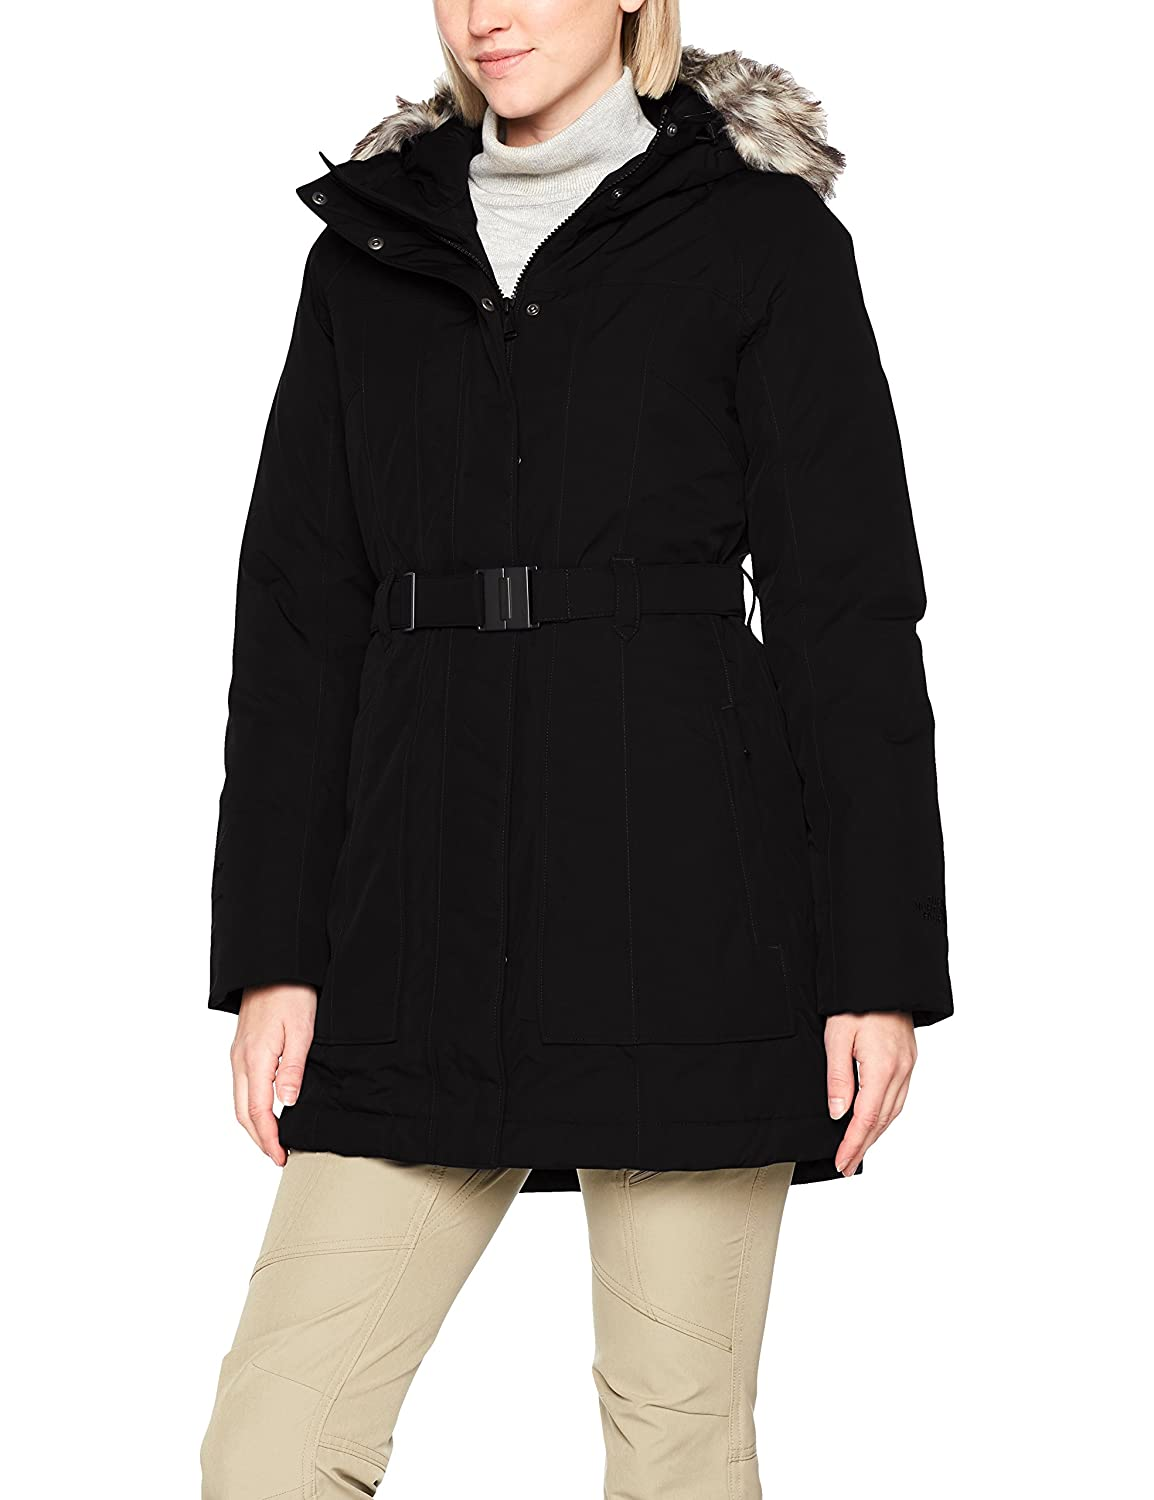 North face brooklyn parka black